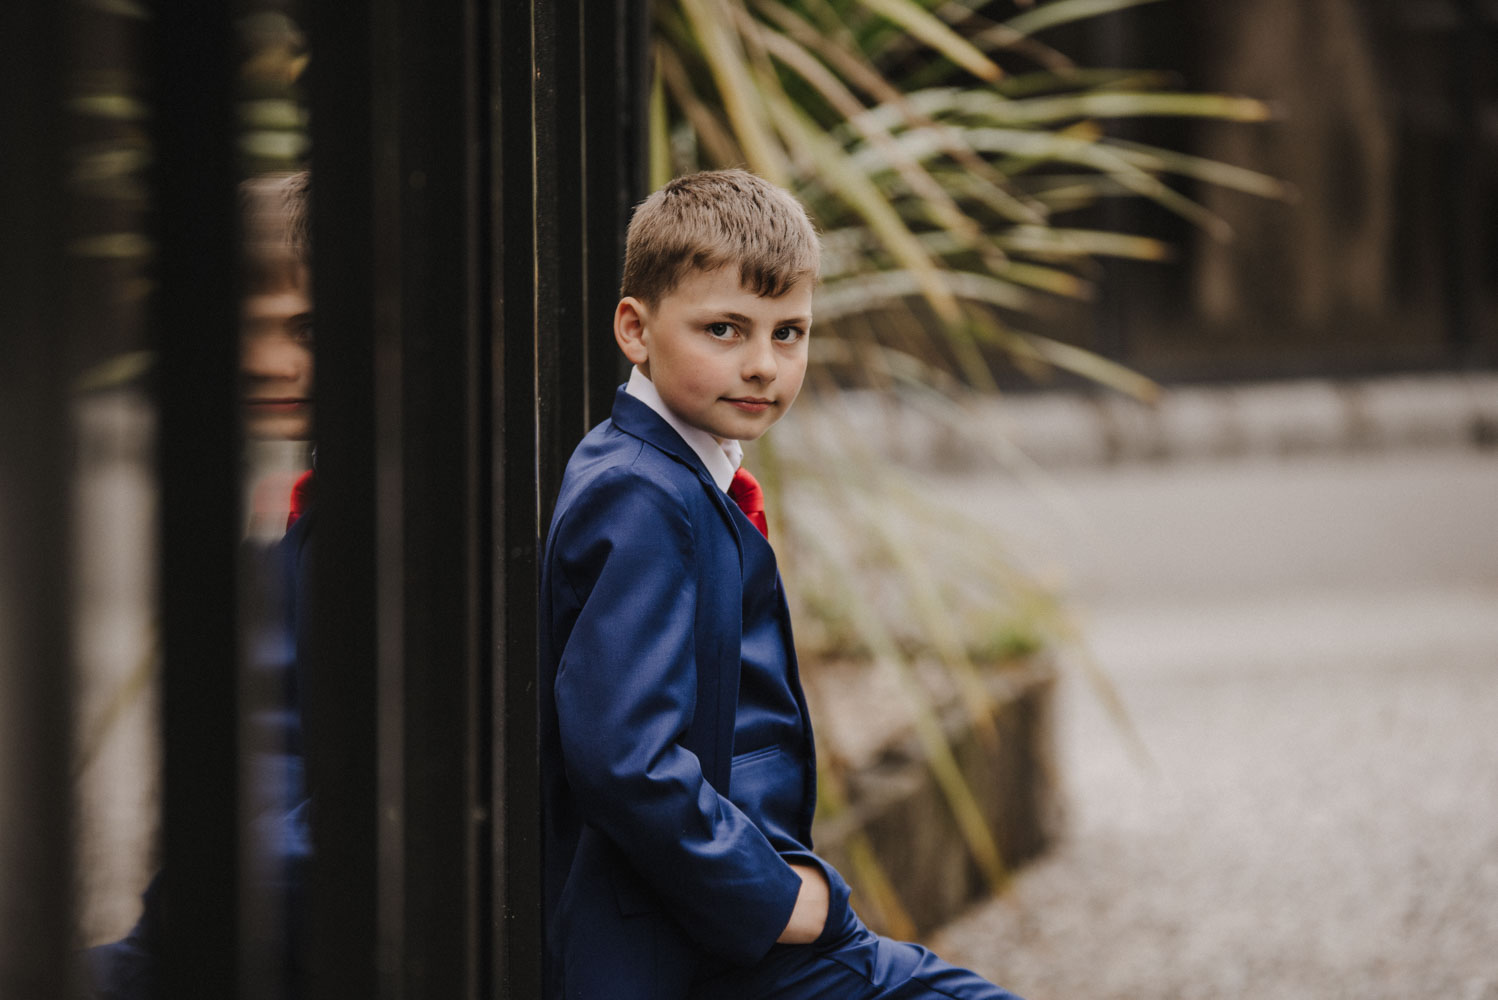 Julek and his Communion Day